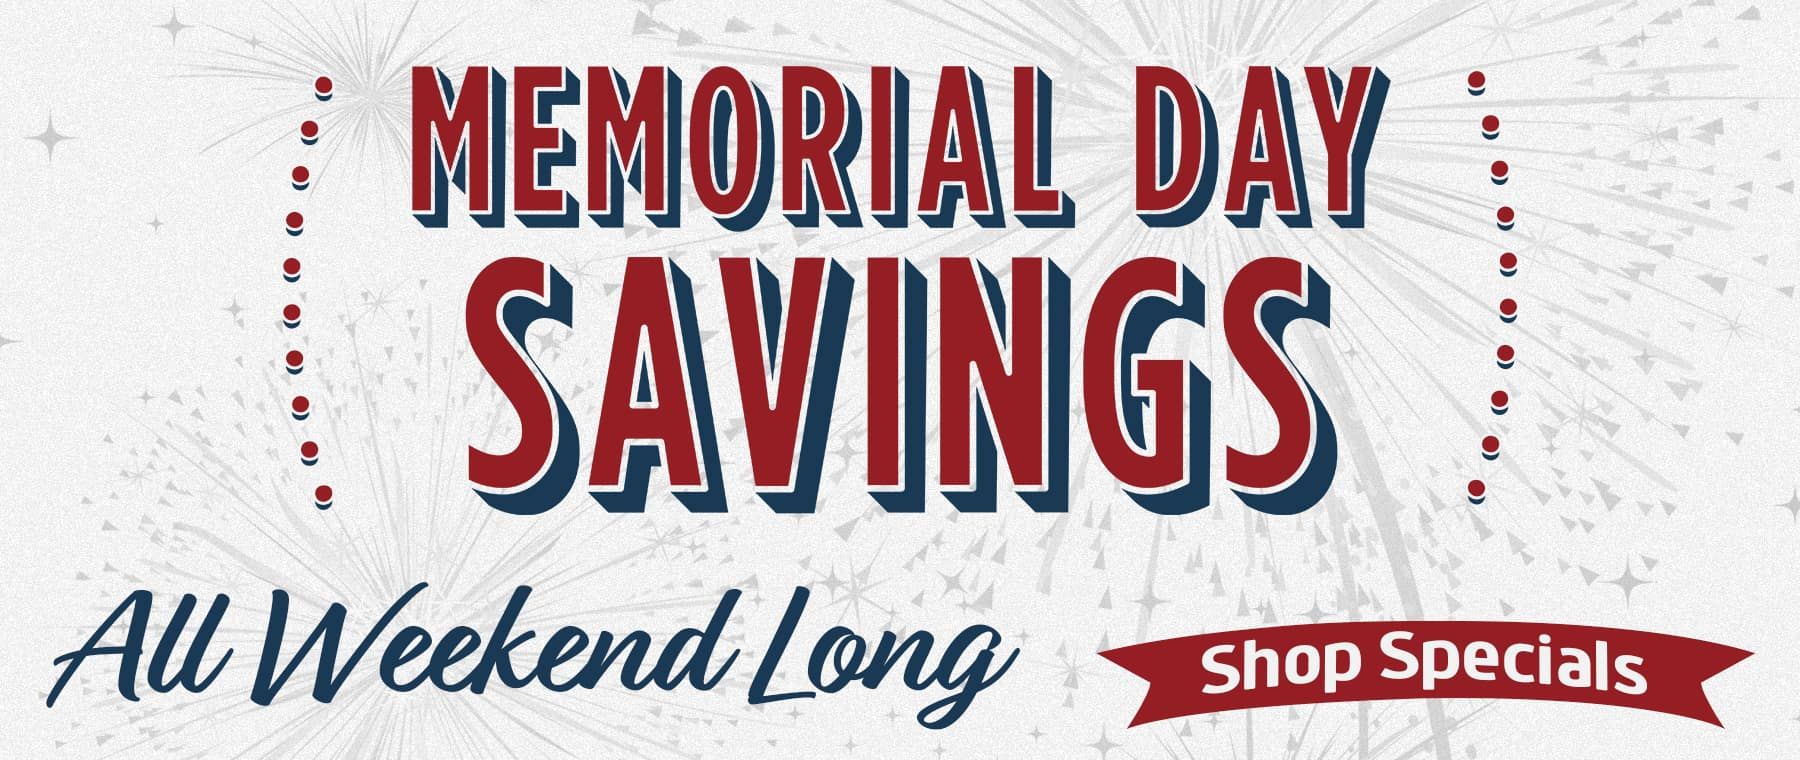 Memorial Day Savings - Hendrick Dodge Cary